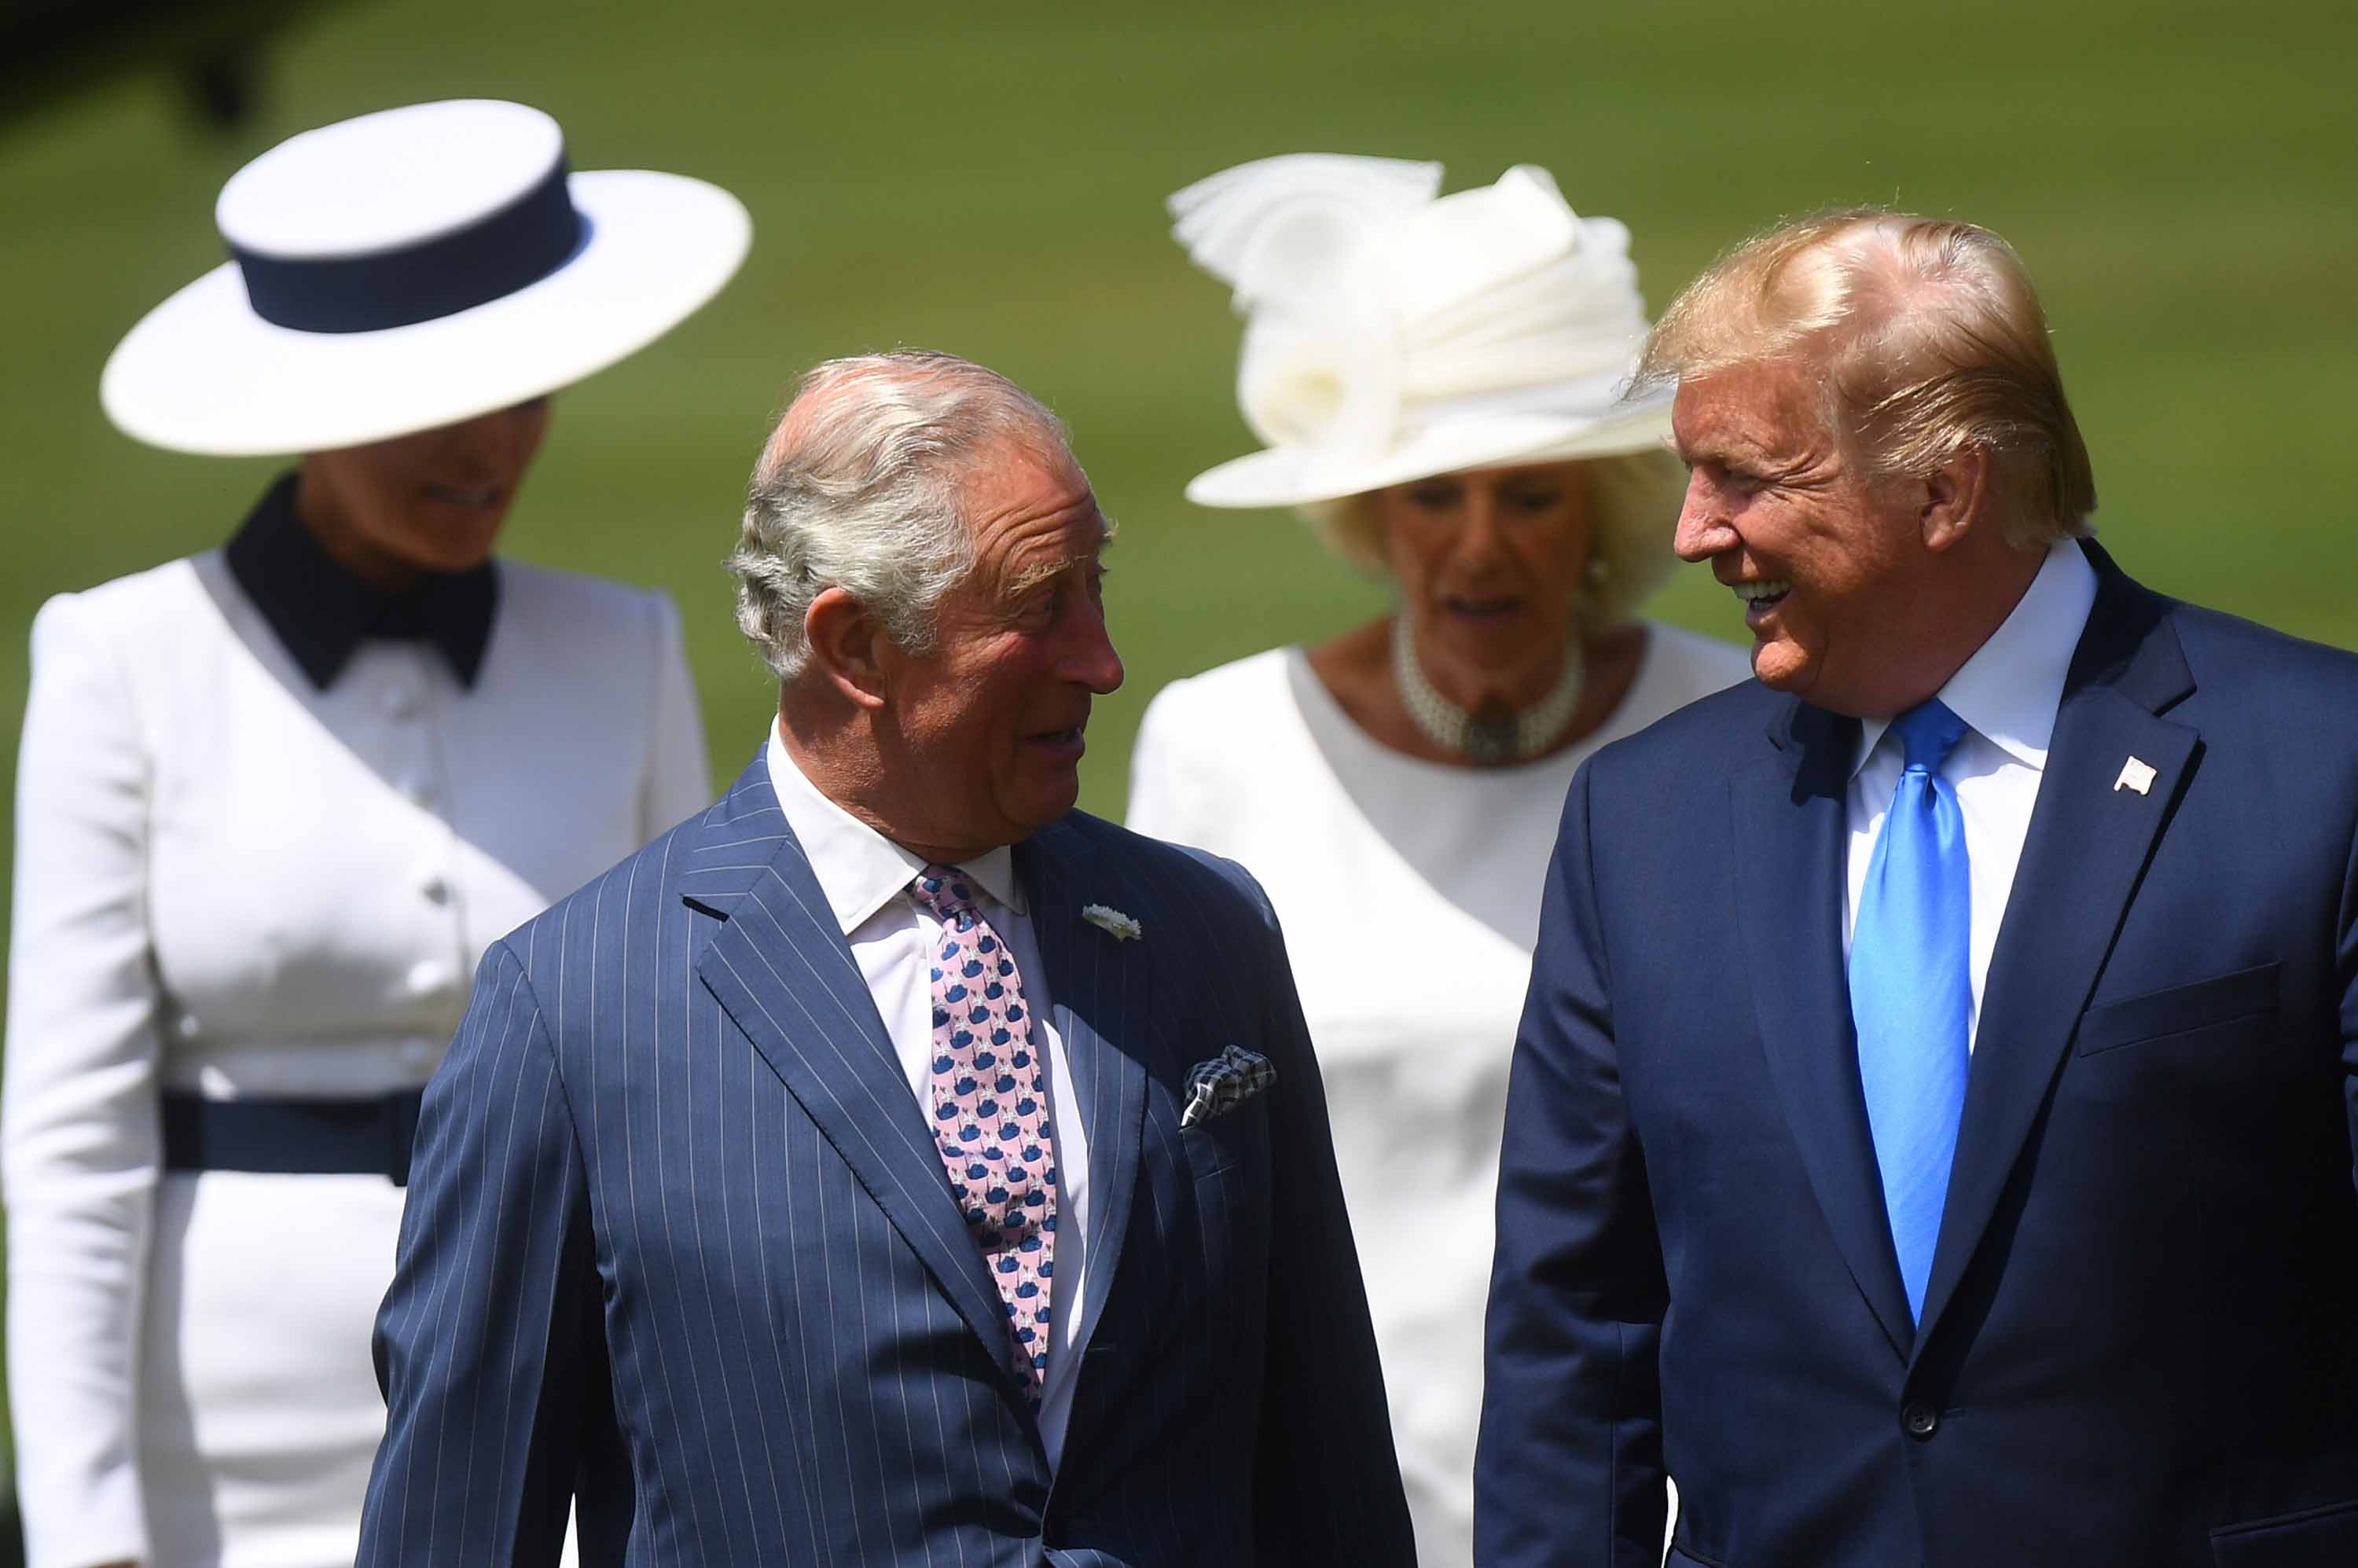 President Trump and Prince Charles speak during Trump's arrival at Buckingham Palace for a State visit in June. Photo: Victoria Jones/WPA Pool/Getty Images